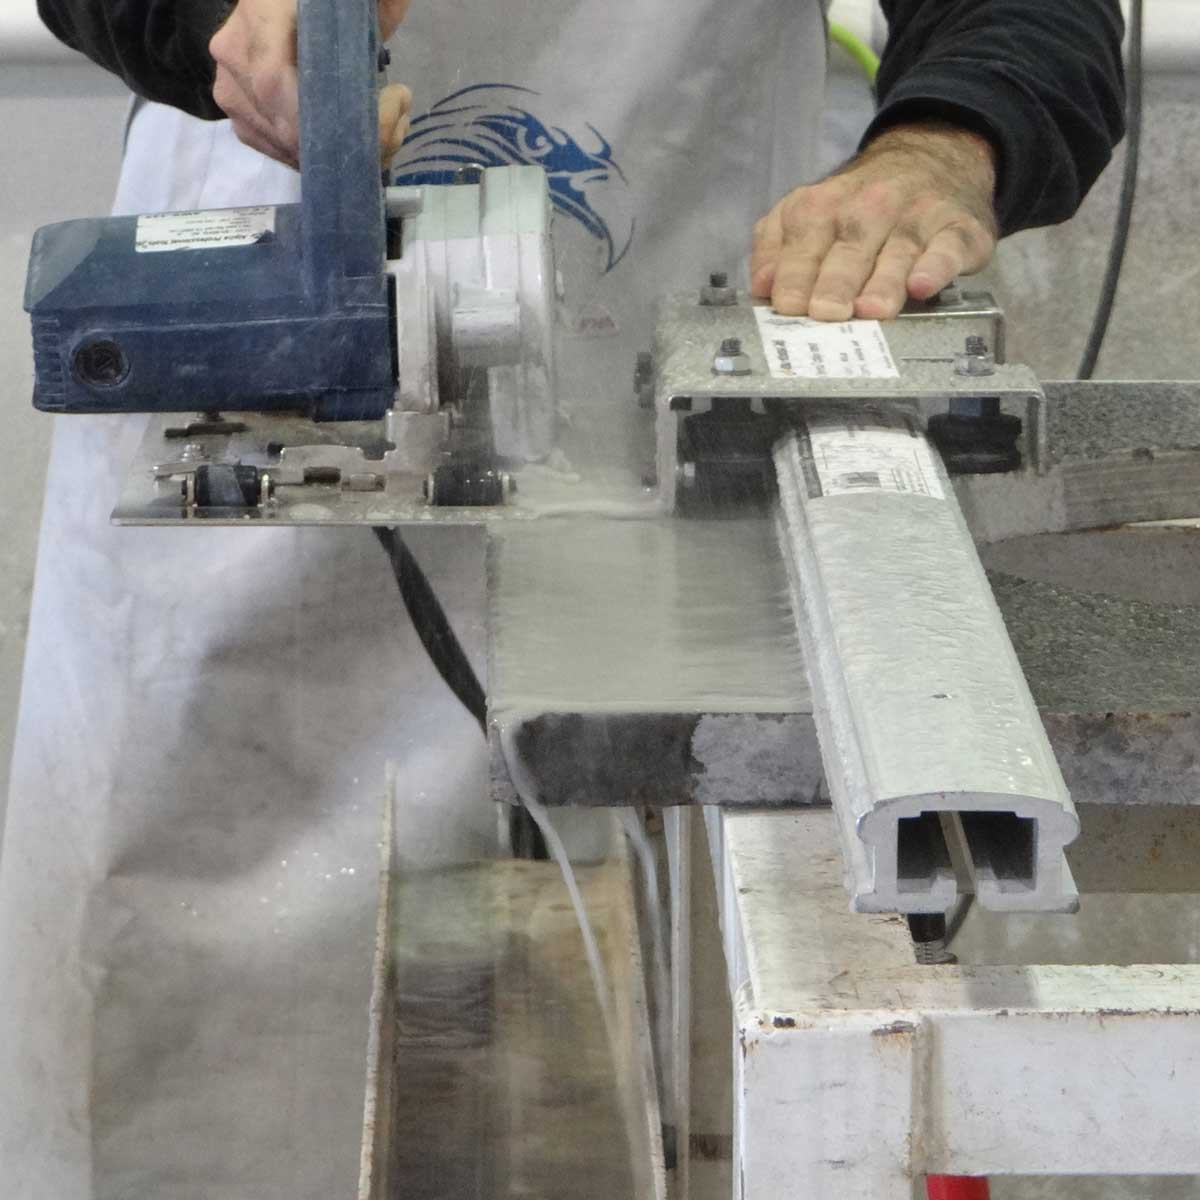 Wet cutting with carriage assembly and rail